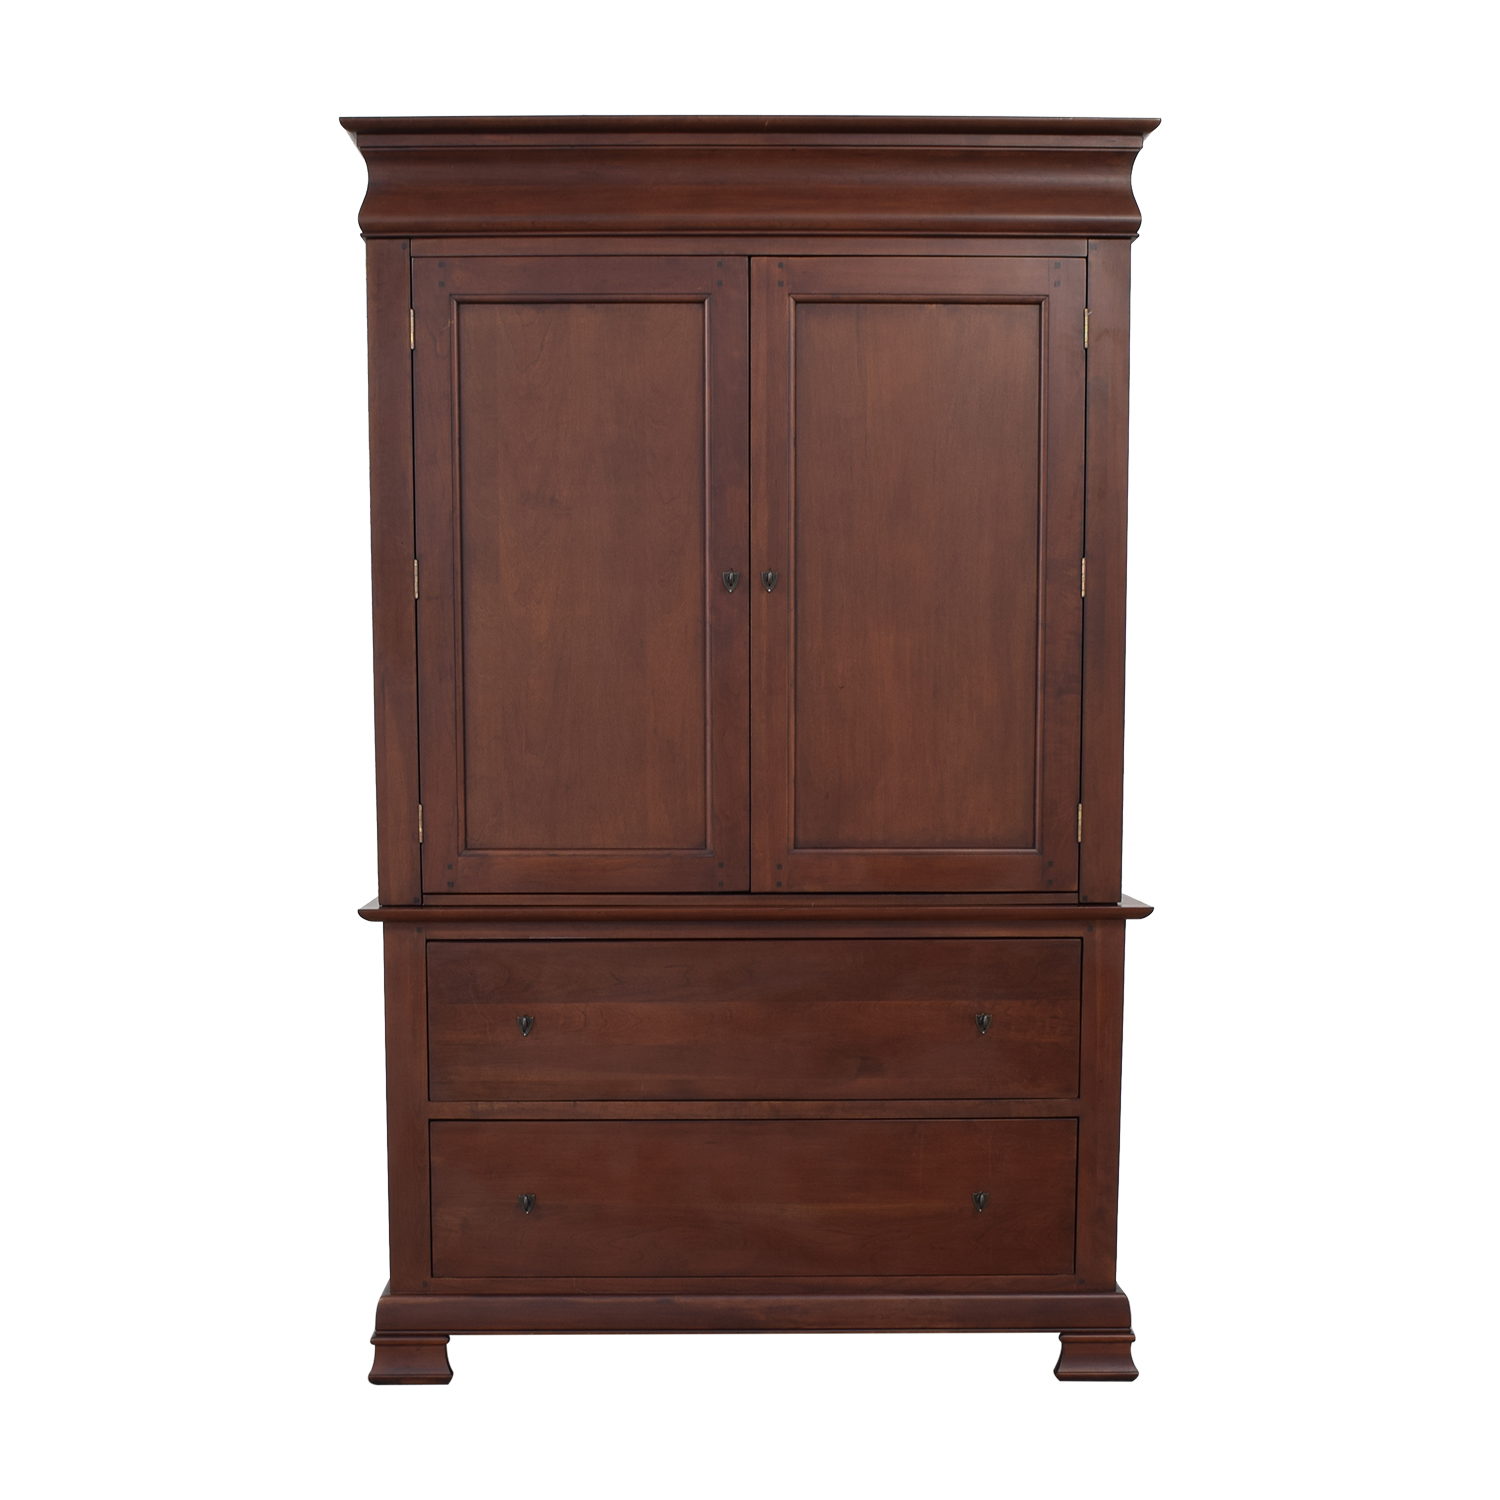 A-America Wood Furniture Wood Entertainment Armoire A-America Wood Furniture